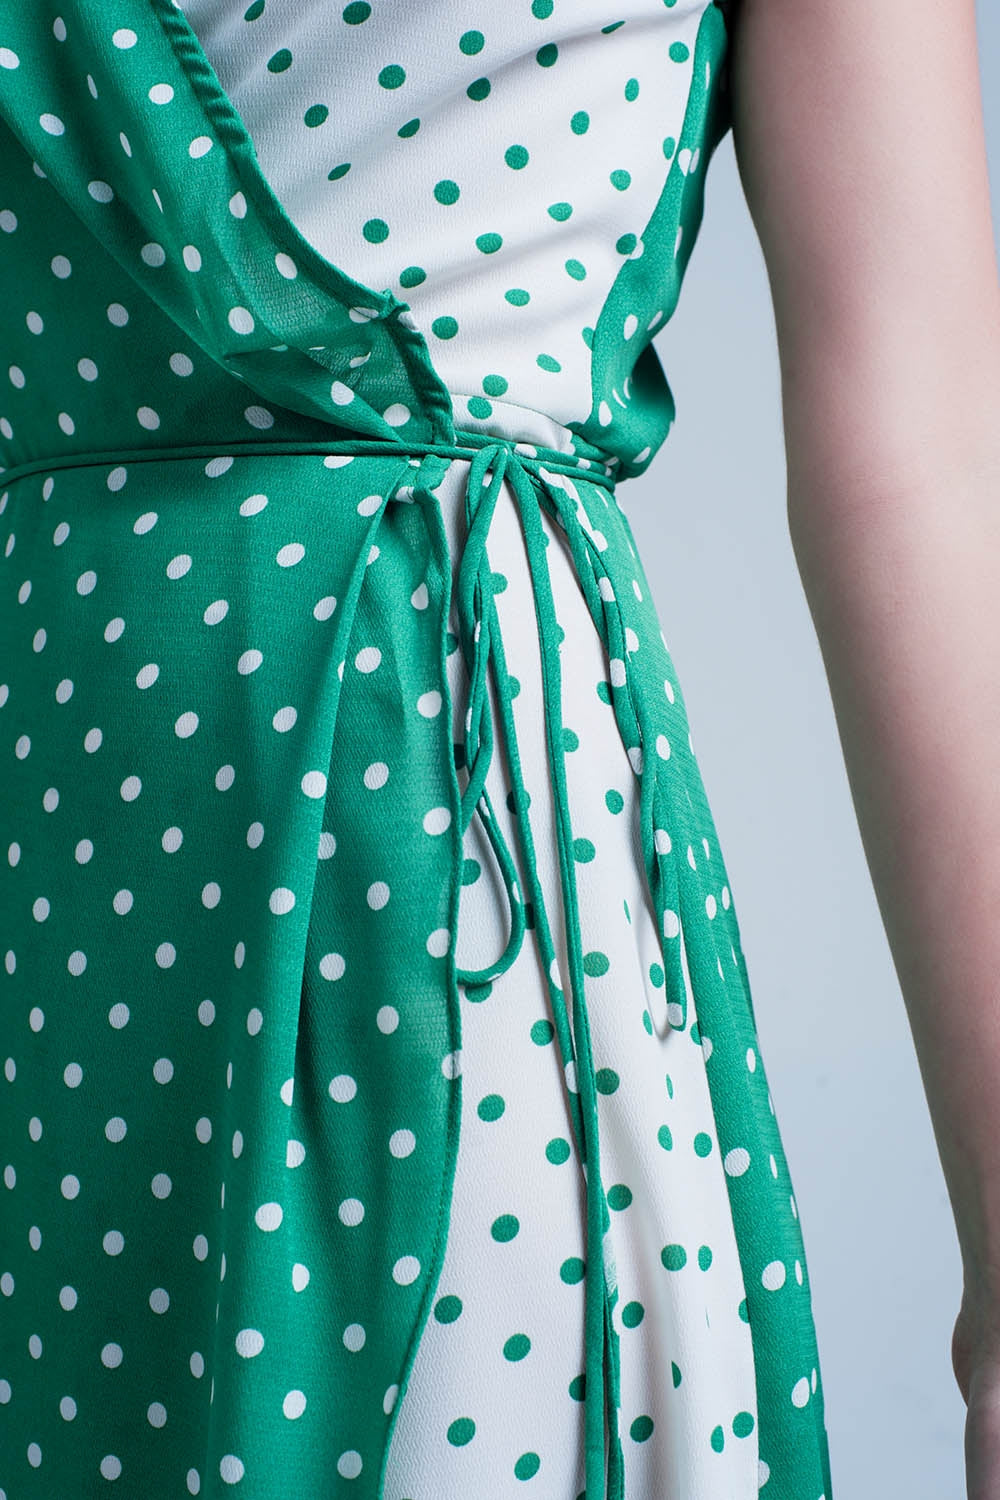 Green Dress With Polka Dots